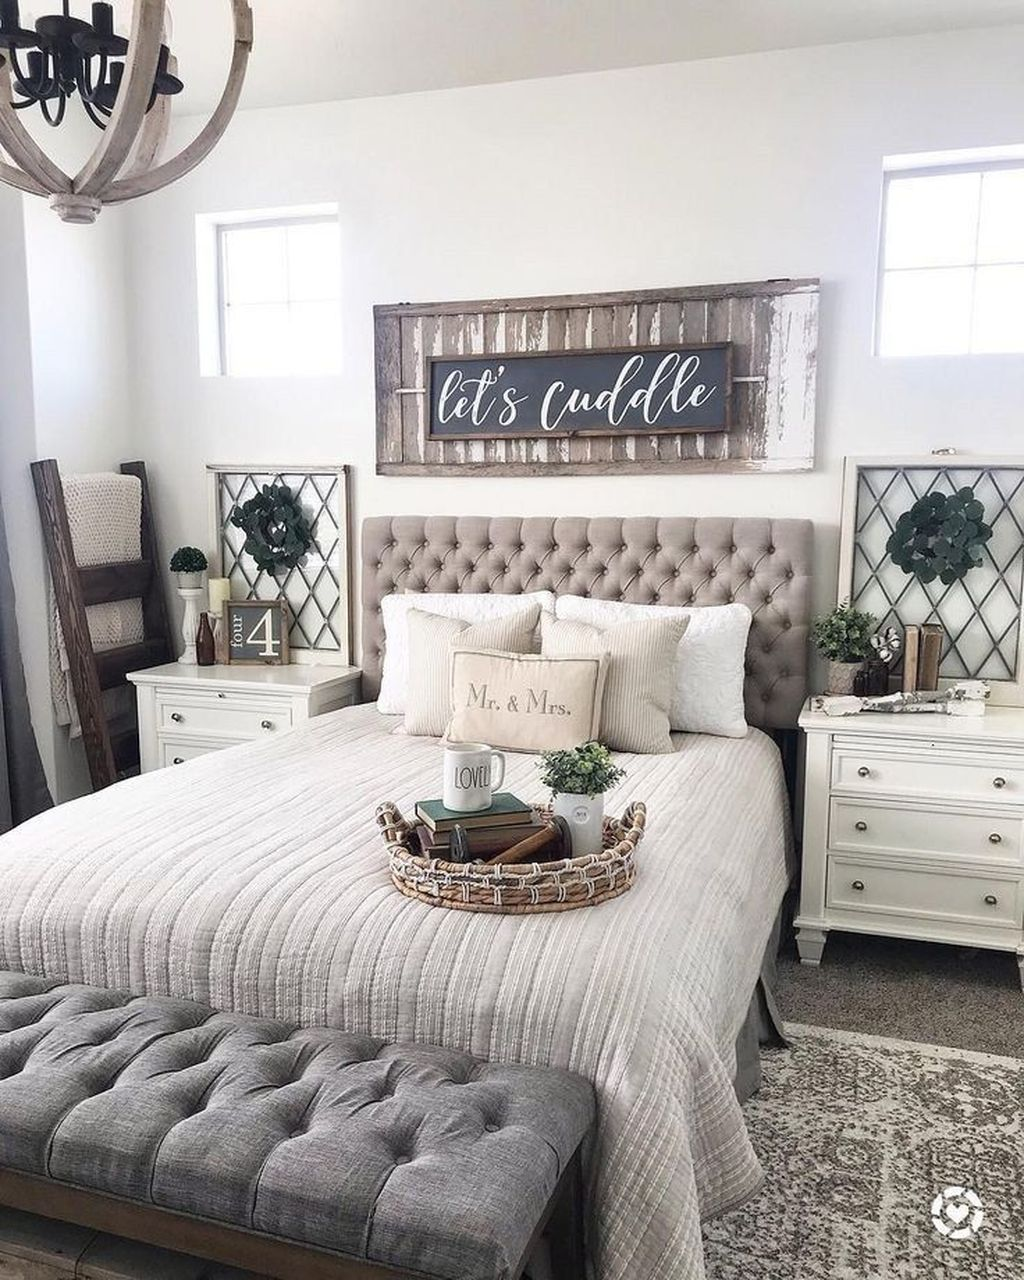 The Best Small Master Bedroom Design Ideas WIth Farmhouse Style 24